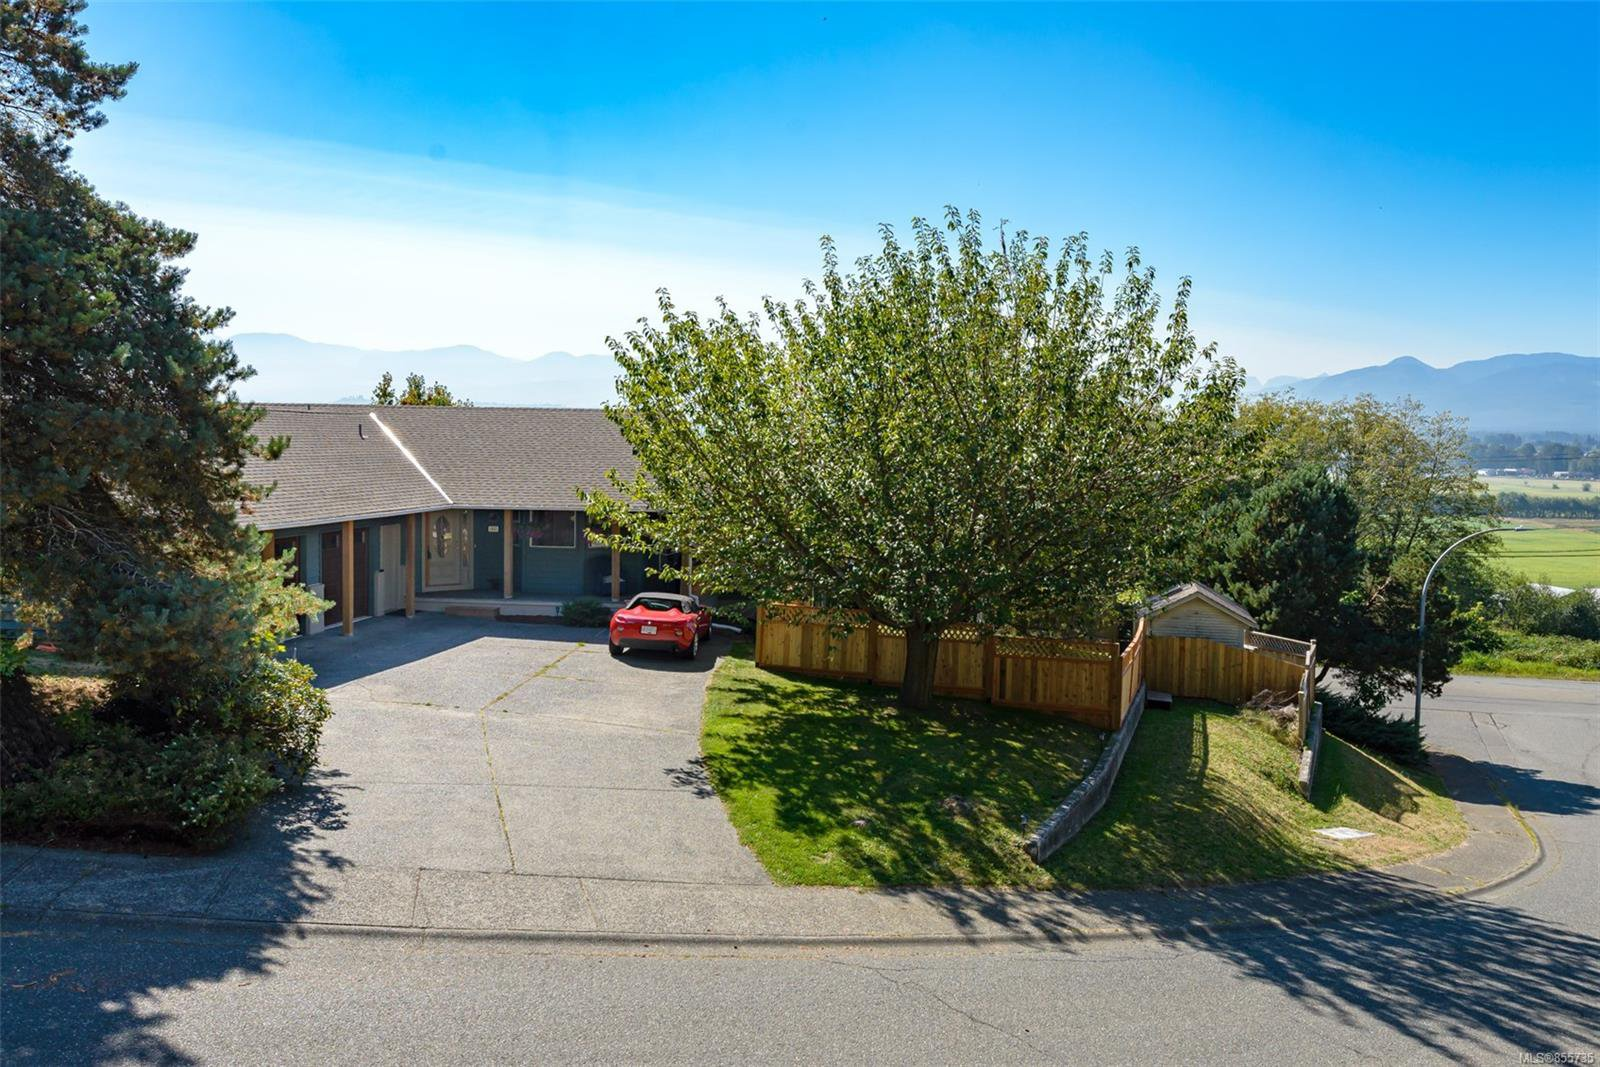 Main Photo: 1401 Valley View Dr in : CV Courtenay East Single Family Detached for sale (Comox Valley)  : MLS®# 855735